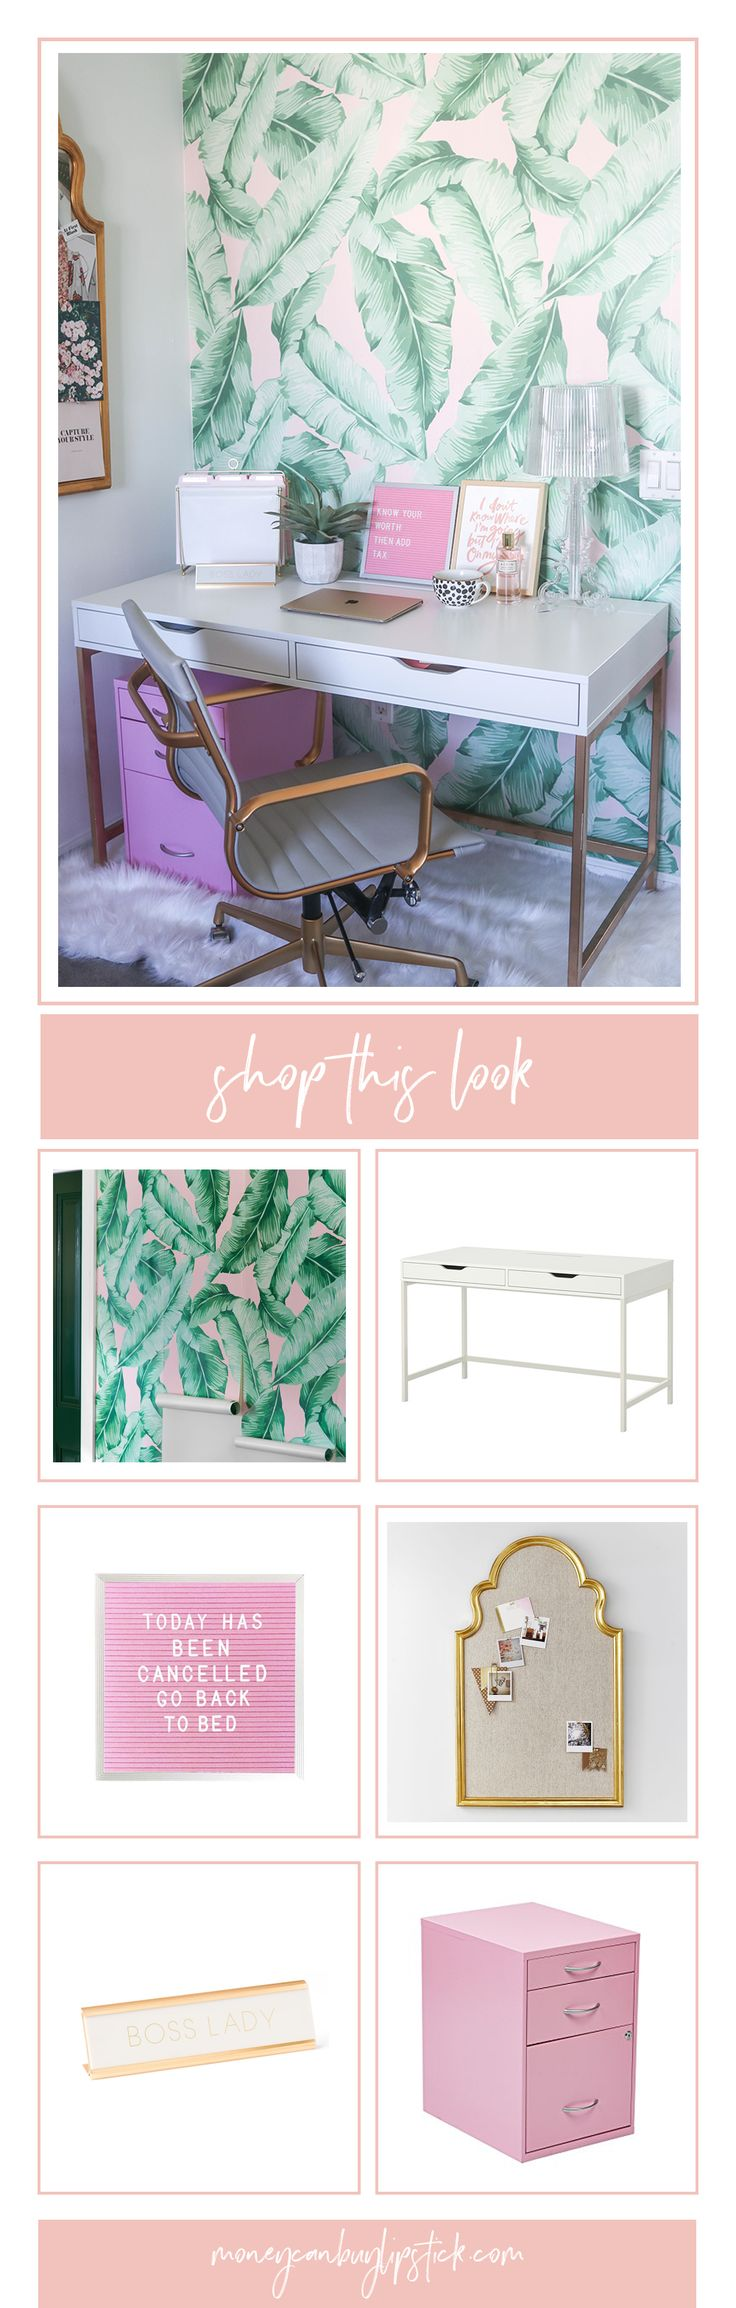 Home Decor   Blogger Office   Tropical Print Wallpaper   Pink Office   White and Gold Desk